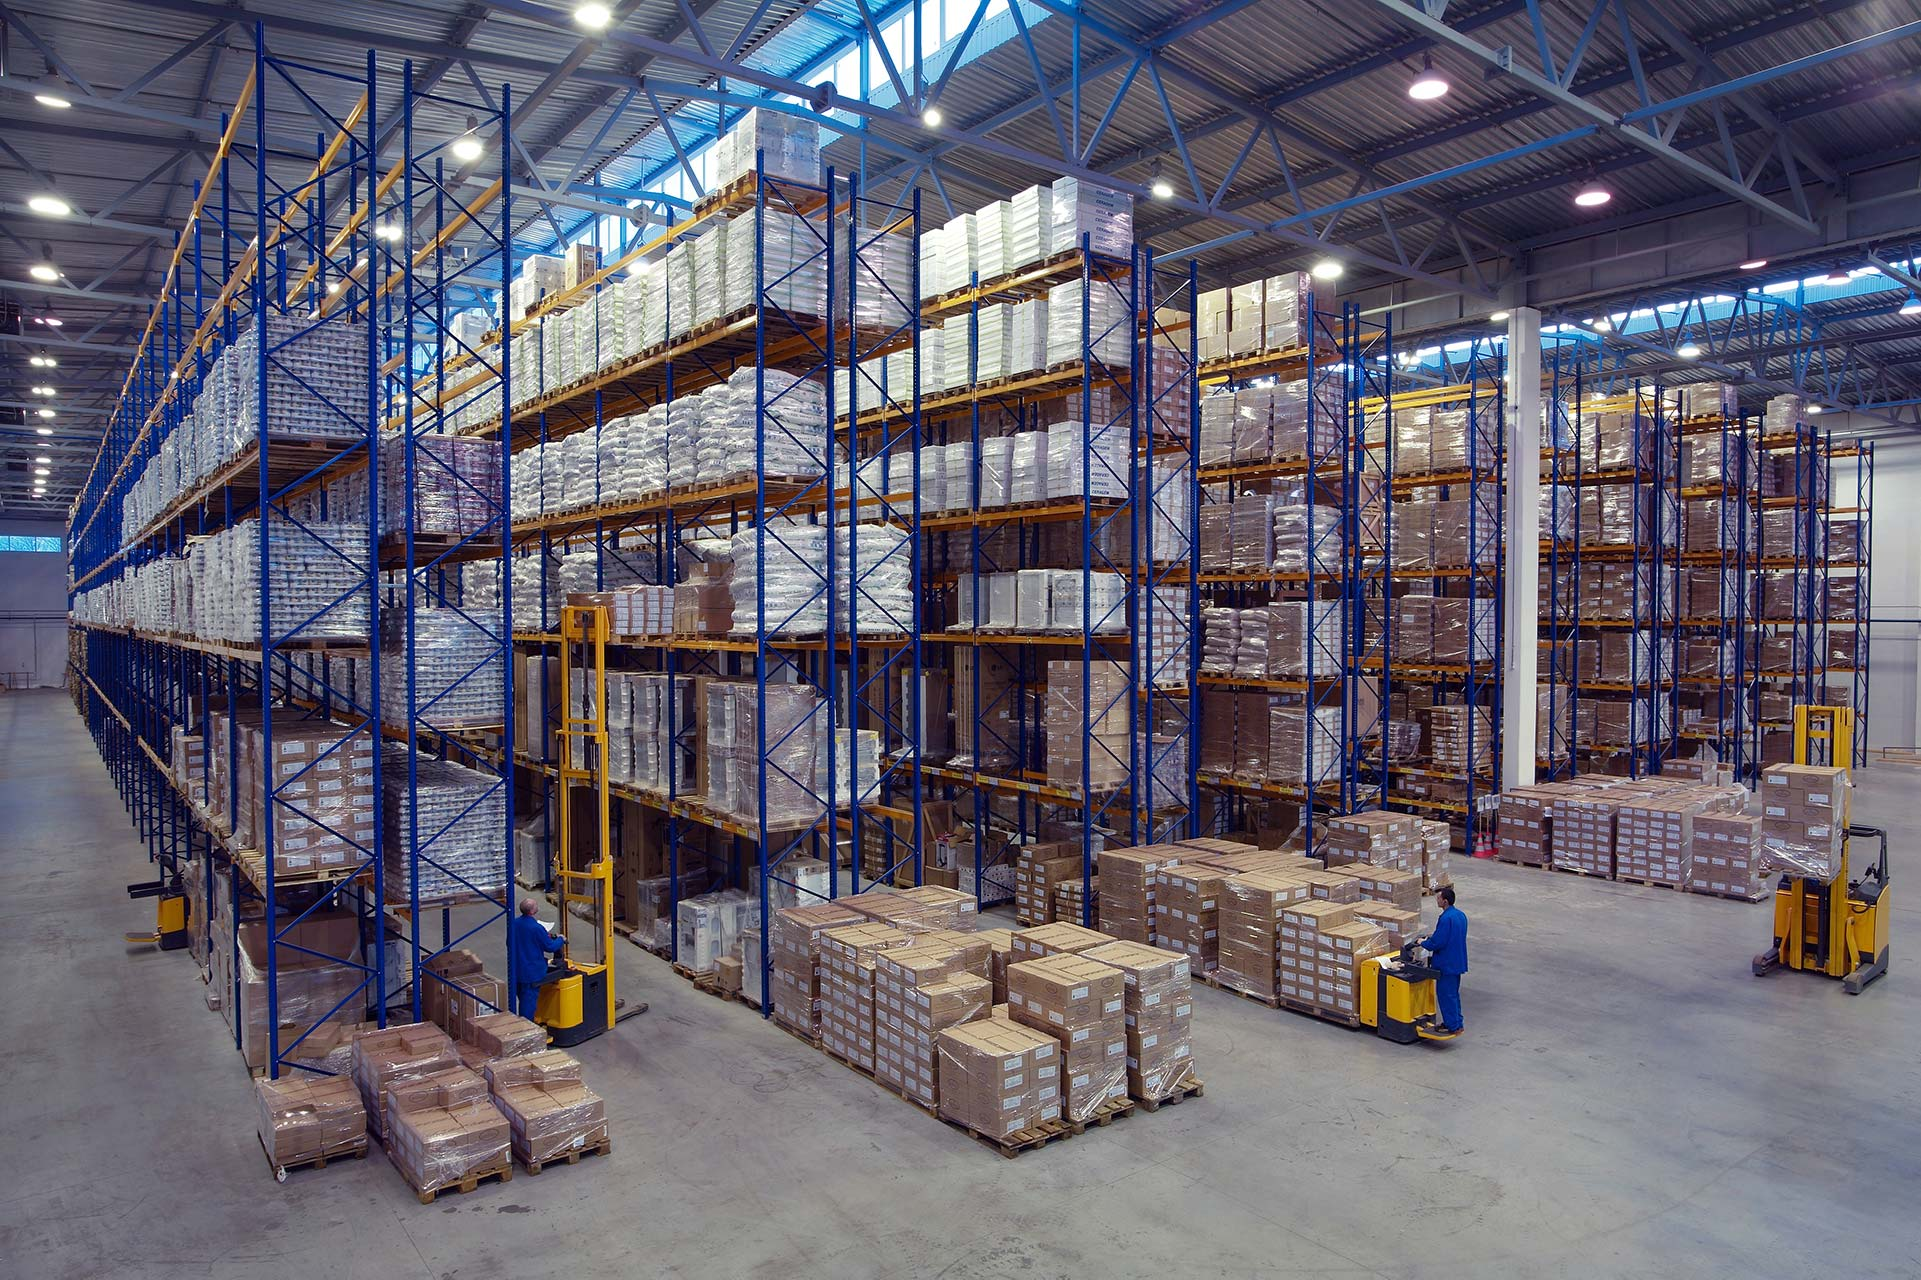 Warehouse Operations: Optimizing the Storage Process